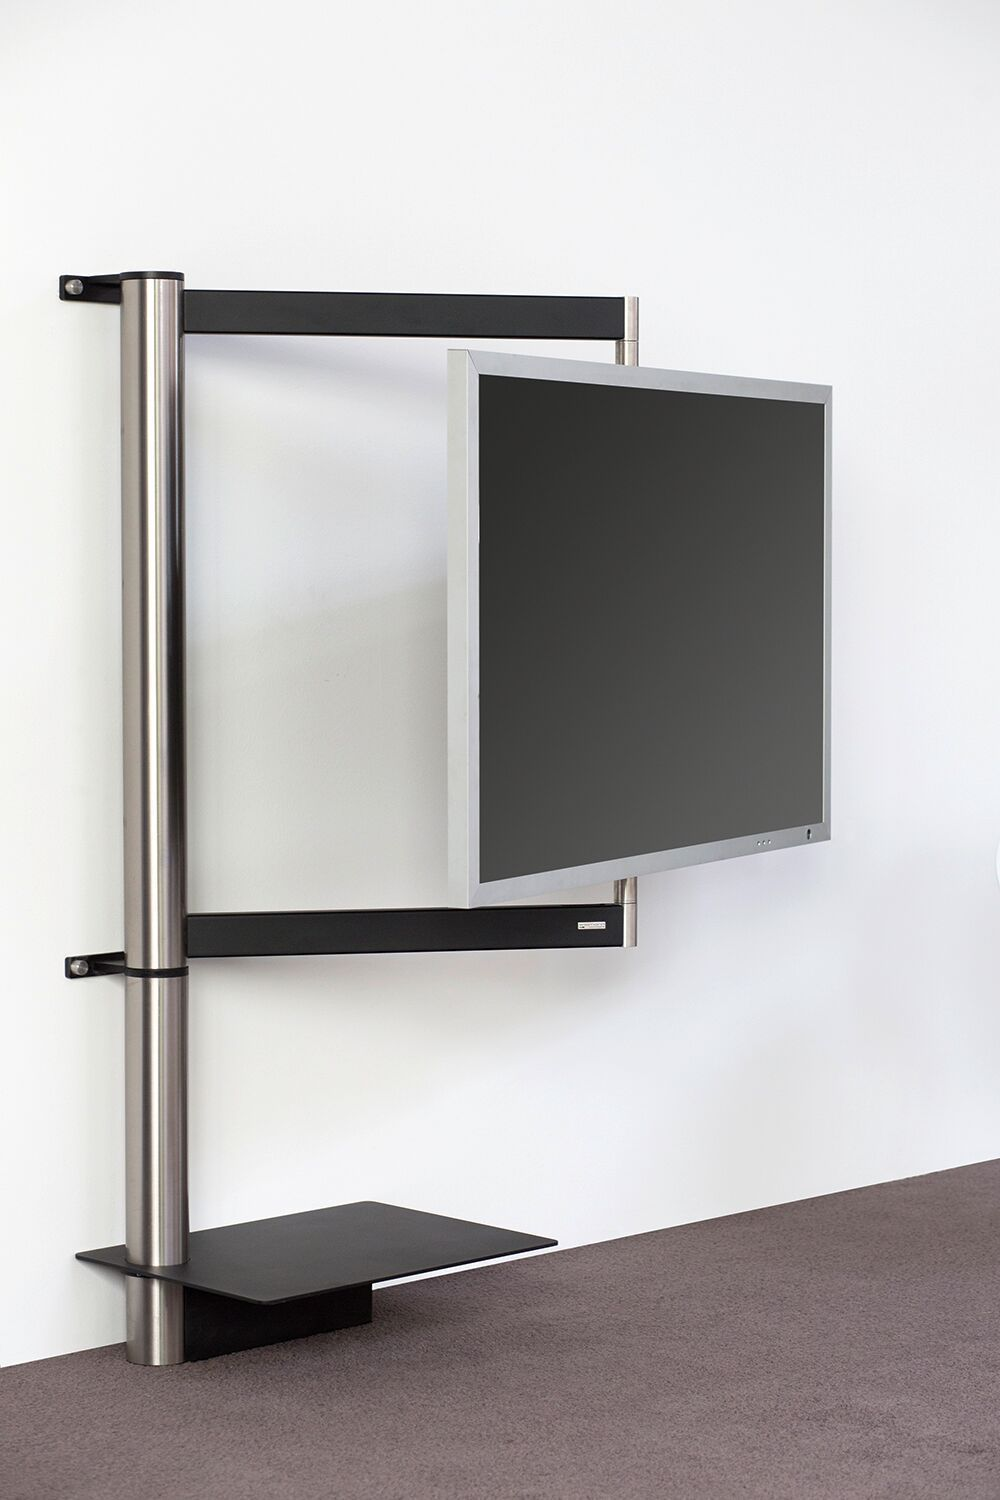 Design Wandhalterung Tv tv mount stand swivel function for view from any place